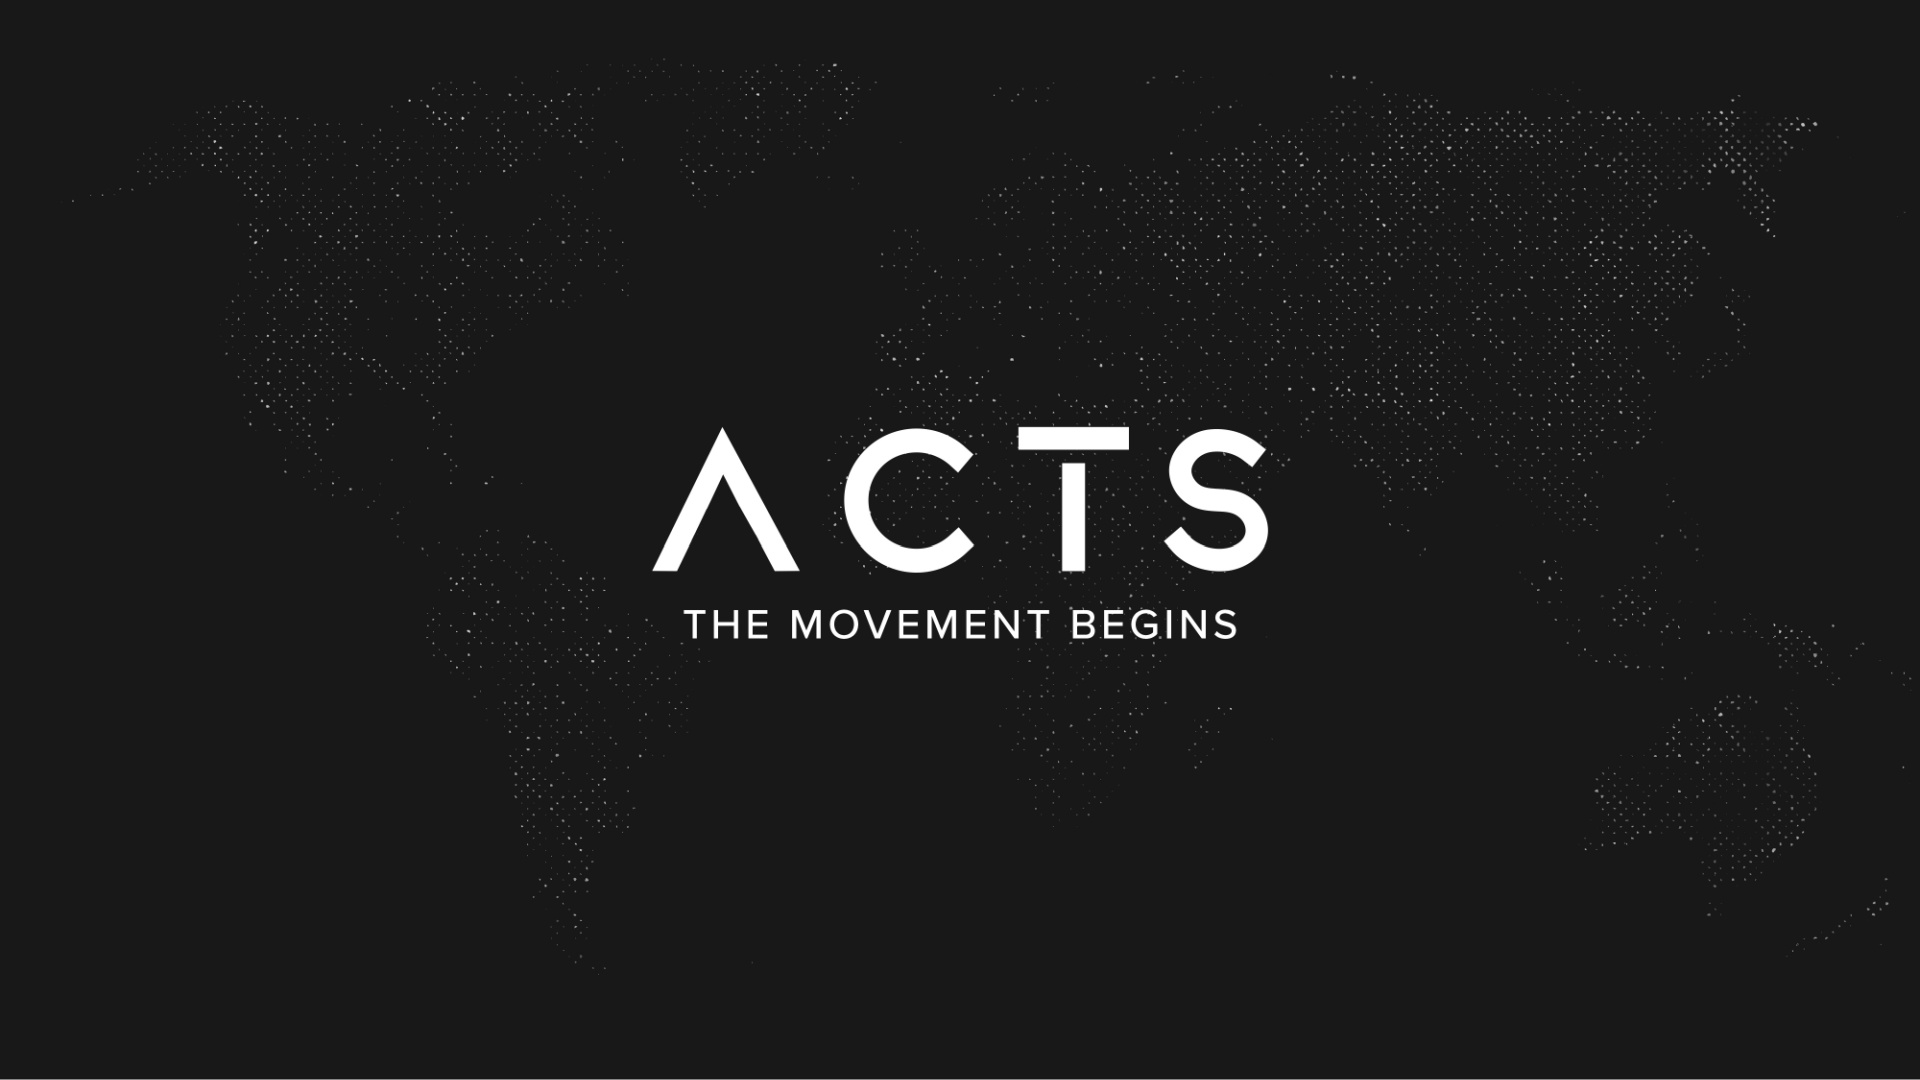 Acts Artwork